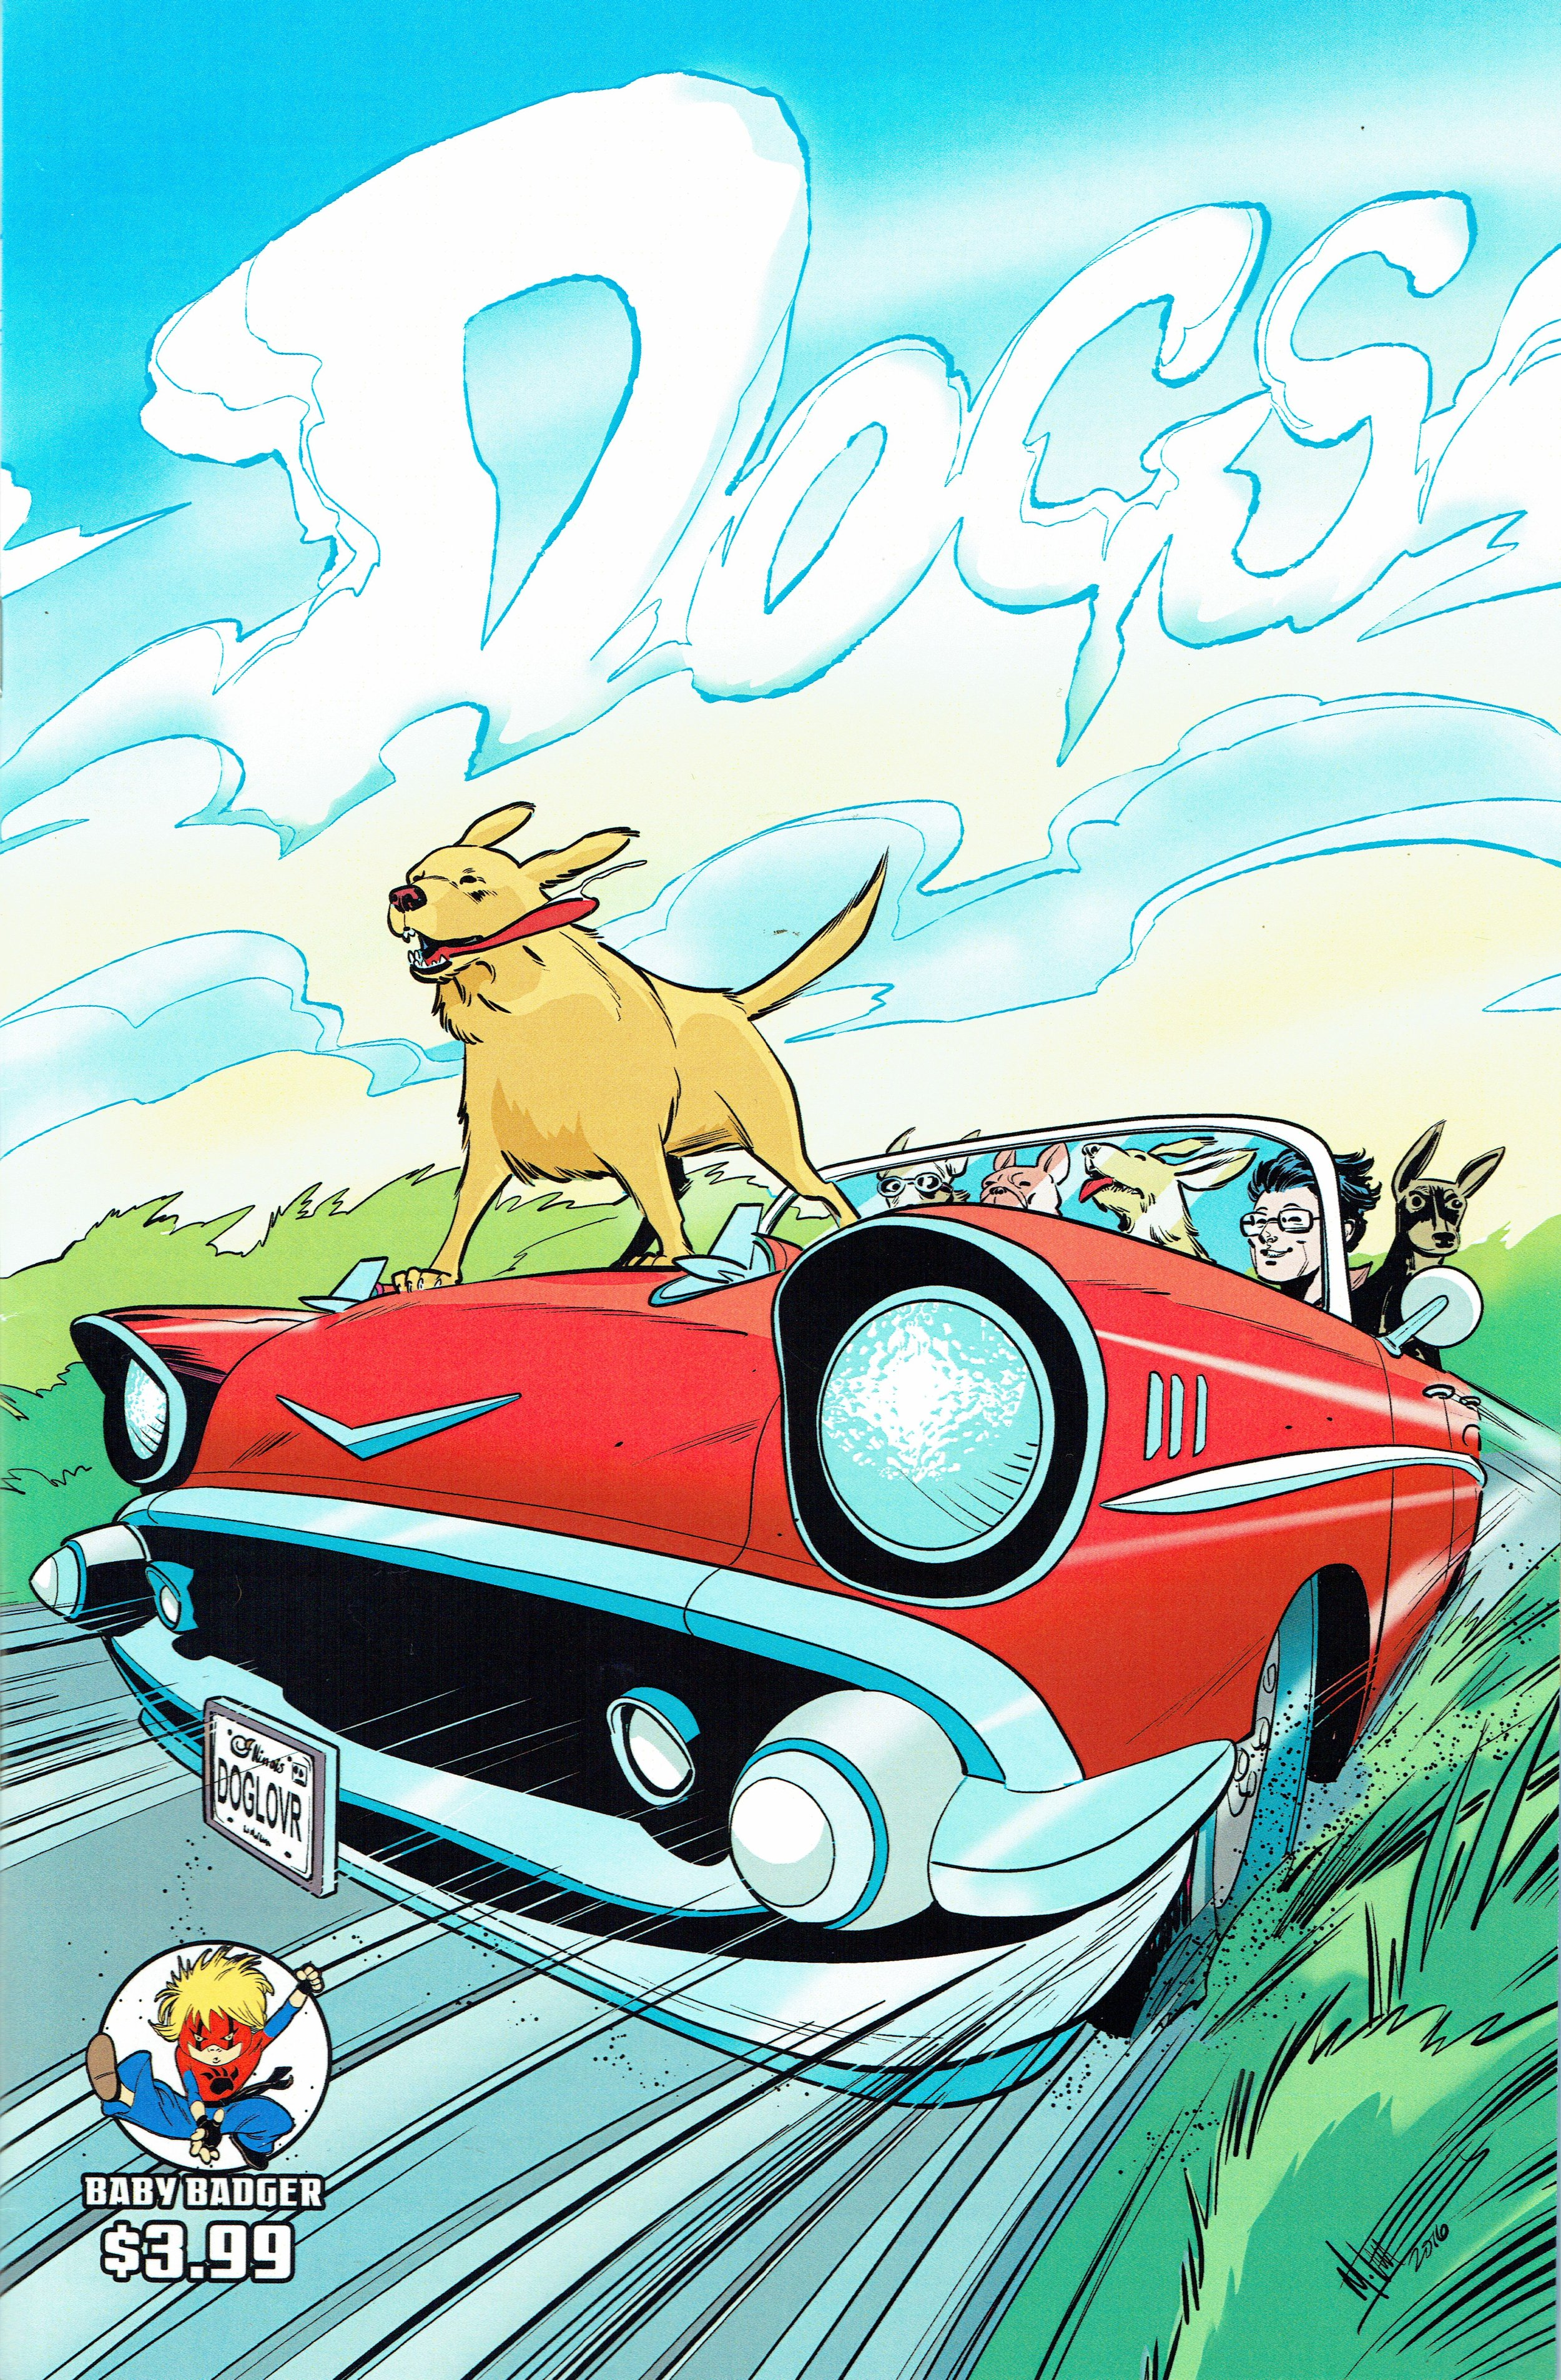 Dogs #1 from Baby Badger Comics.